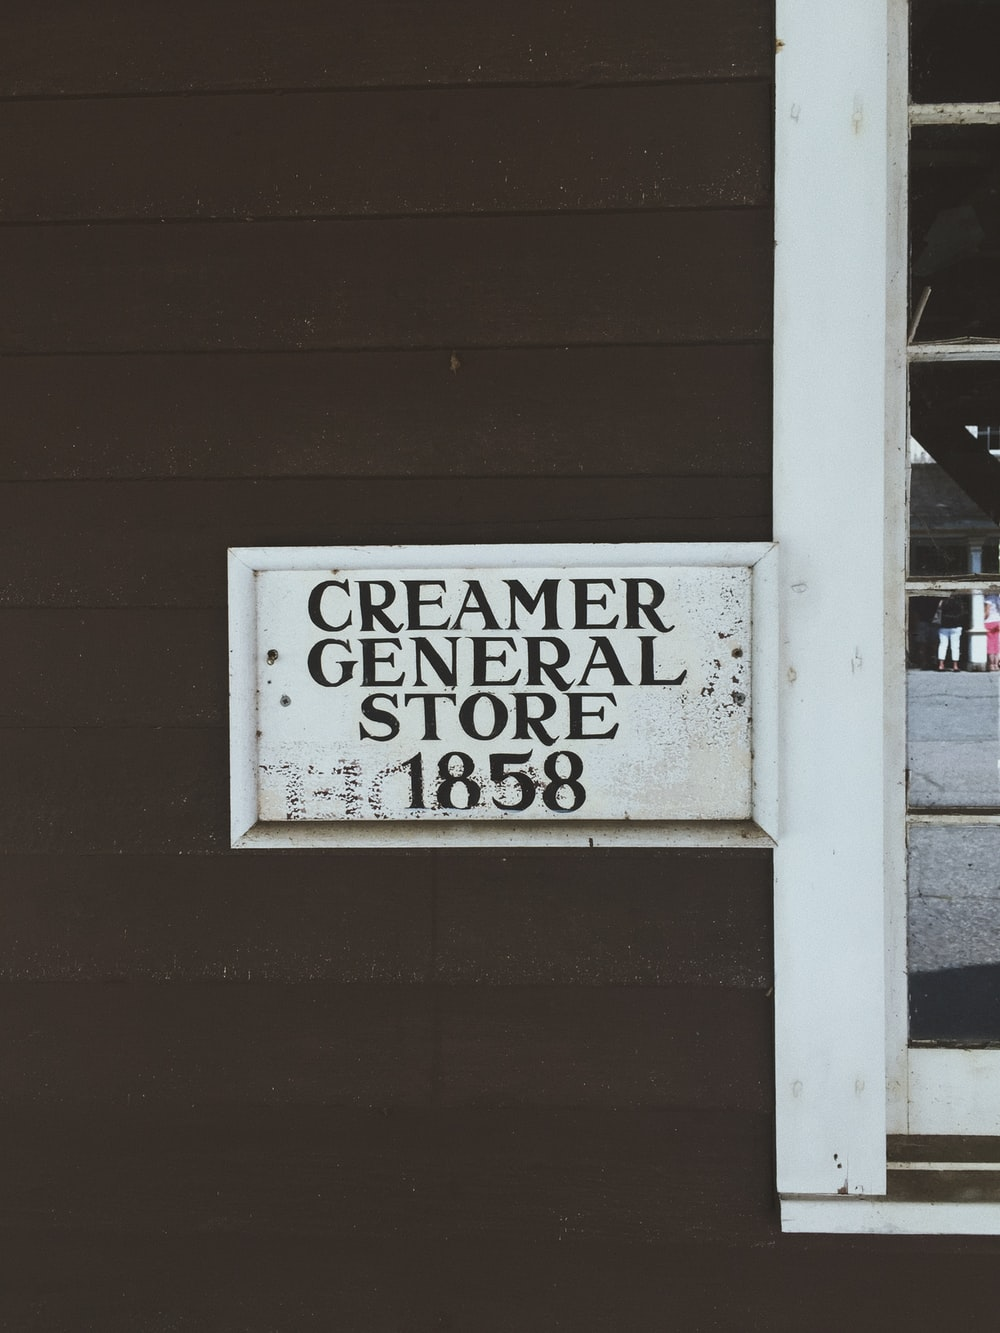 1858 Creamer General Store signage on wooden wall